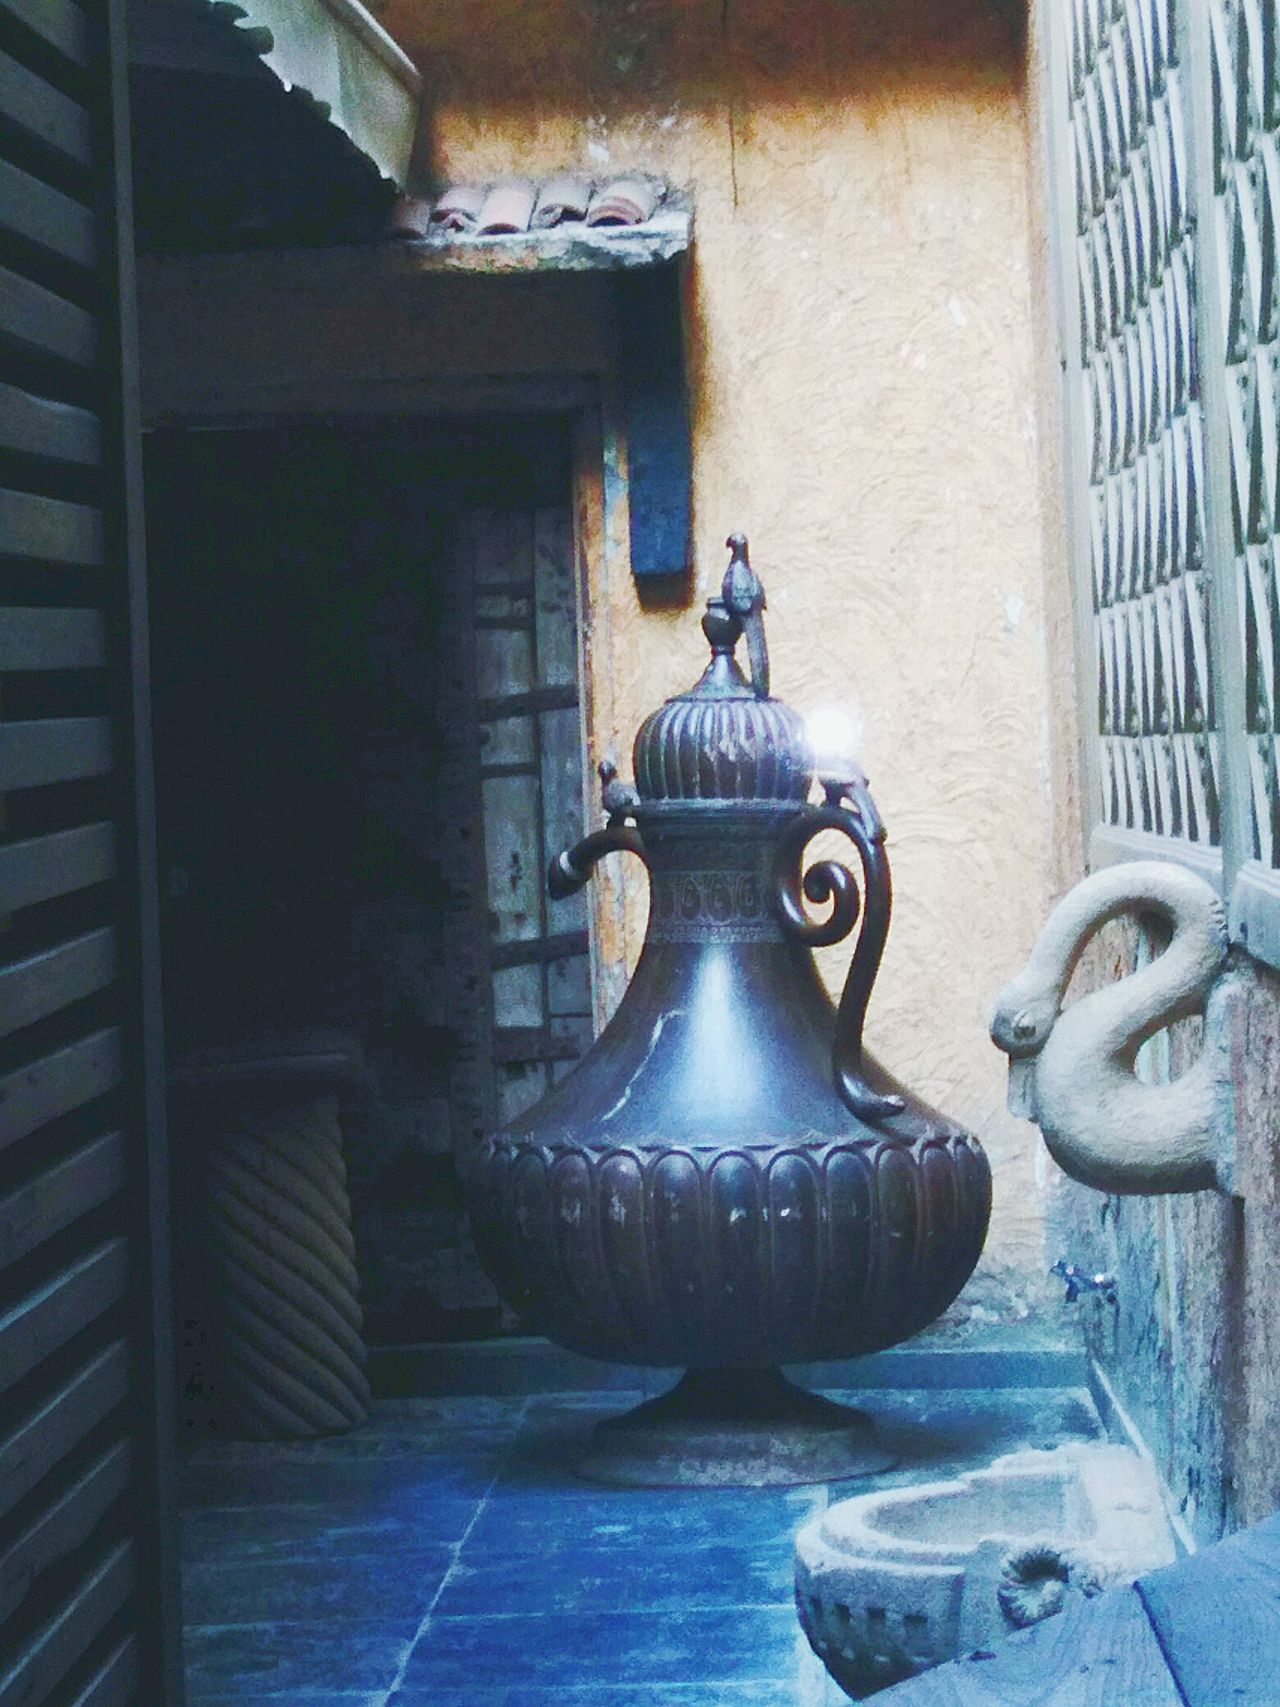 No People Built Structure Old-fashioned Architecture Pottery Khyber